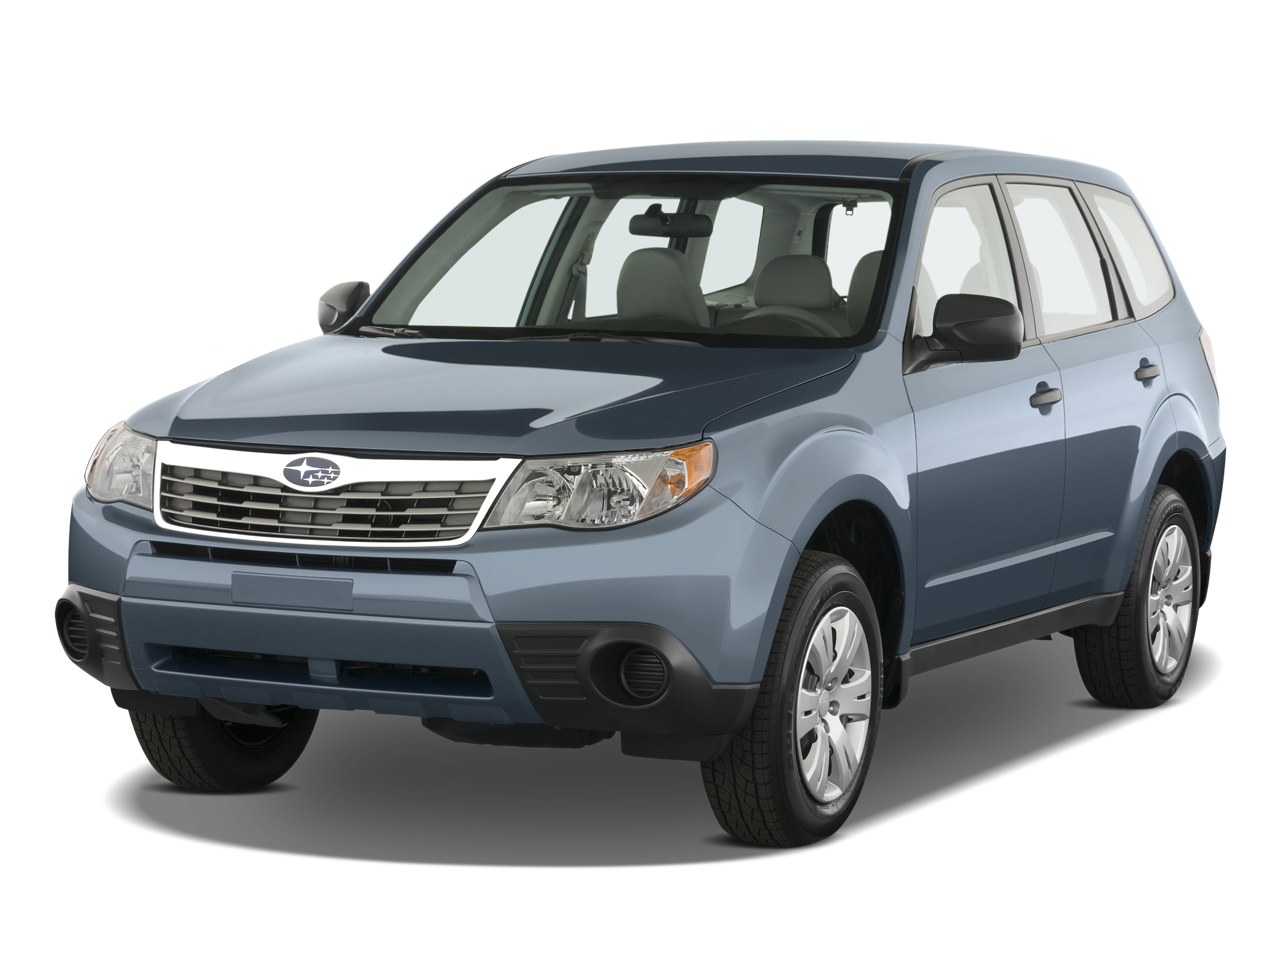 2009 subaru forester 2 5xt limited subaru compact suv. Black Bedroom Furniture Sets. Home Design Ideas